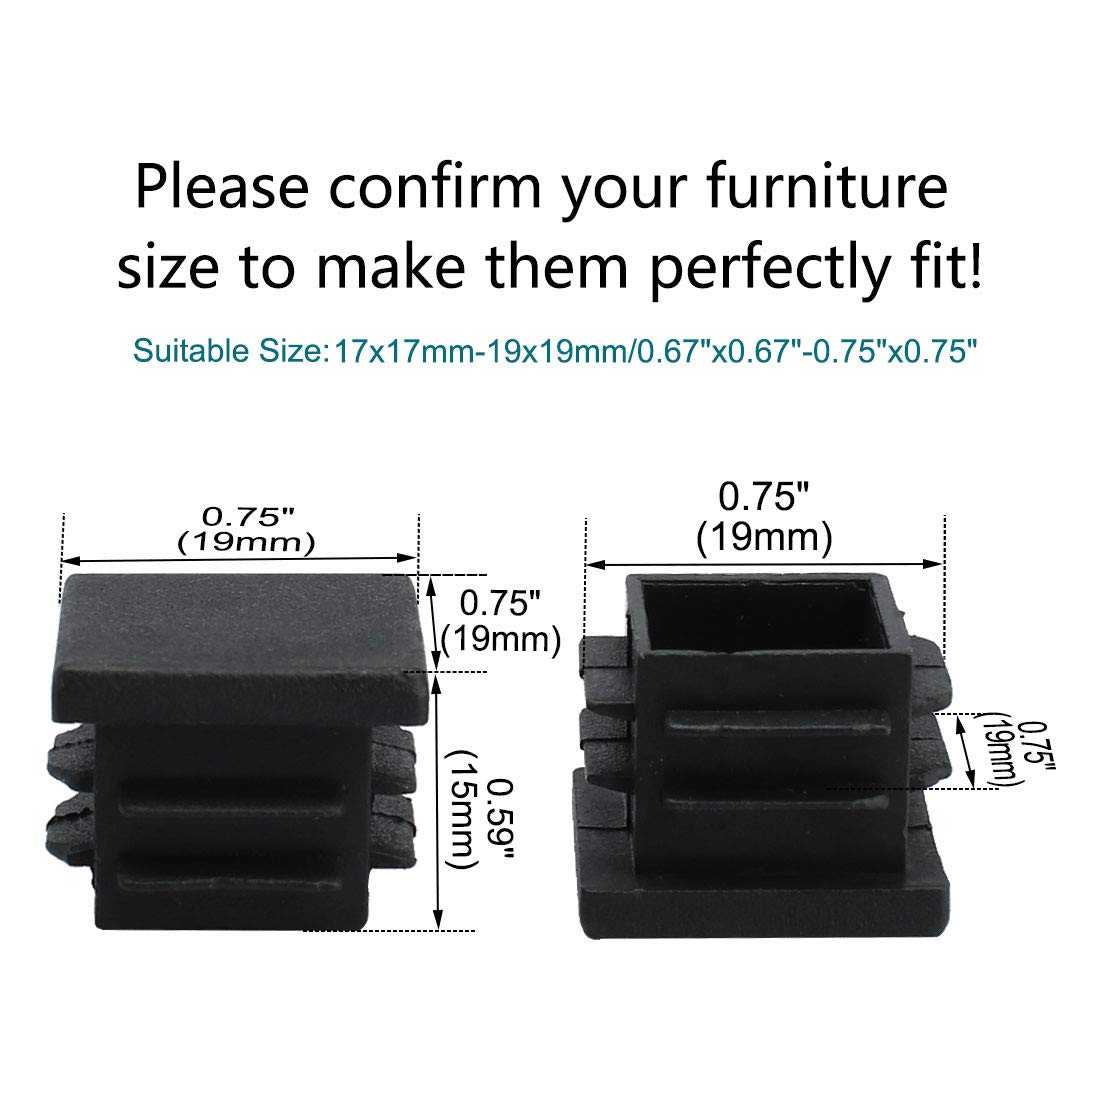 uxcell 70pcs 19 x 19mm Plastic Square Ribbed Tube Inserts End Covers Cap for 0.67 to 0.75 Inner Size Furniture Sofa Couch Feet Floor Protector